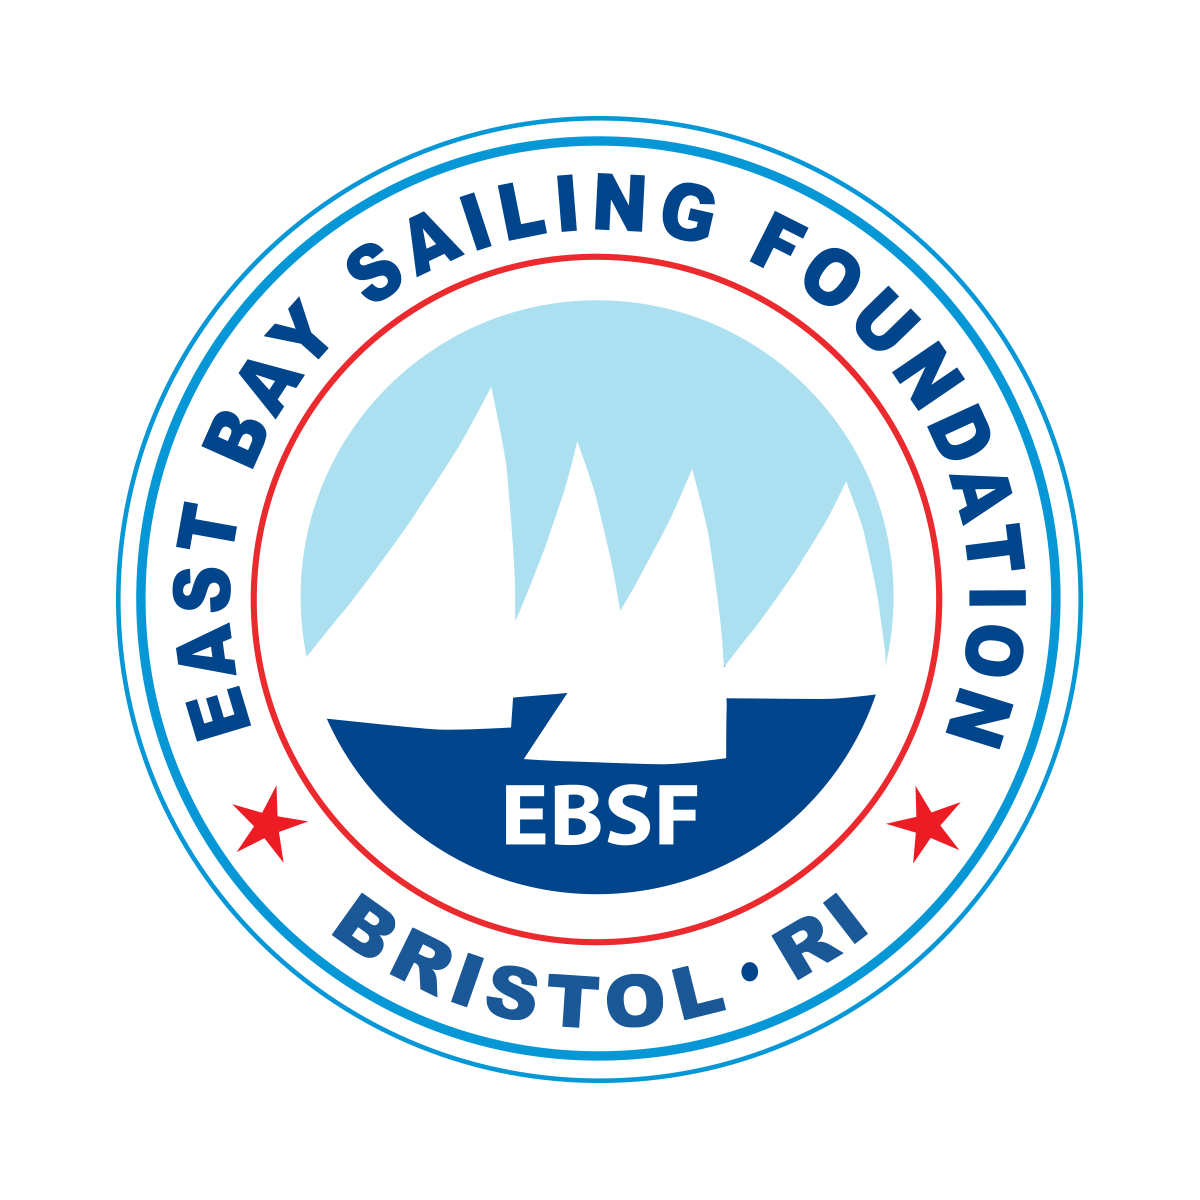 East Bay Sailing Foundation - Logo Added to Other Products